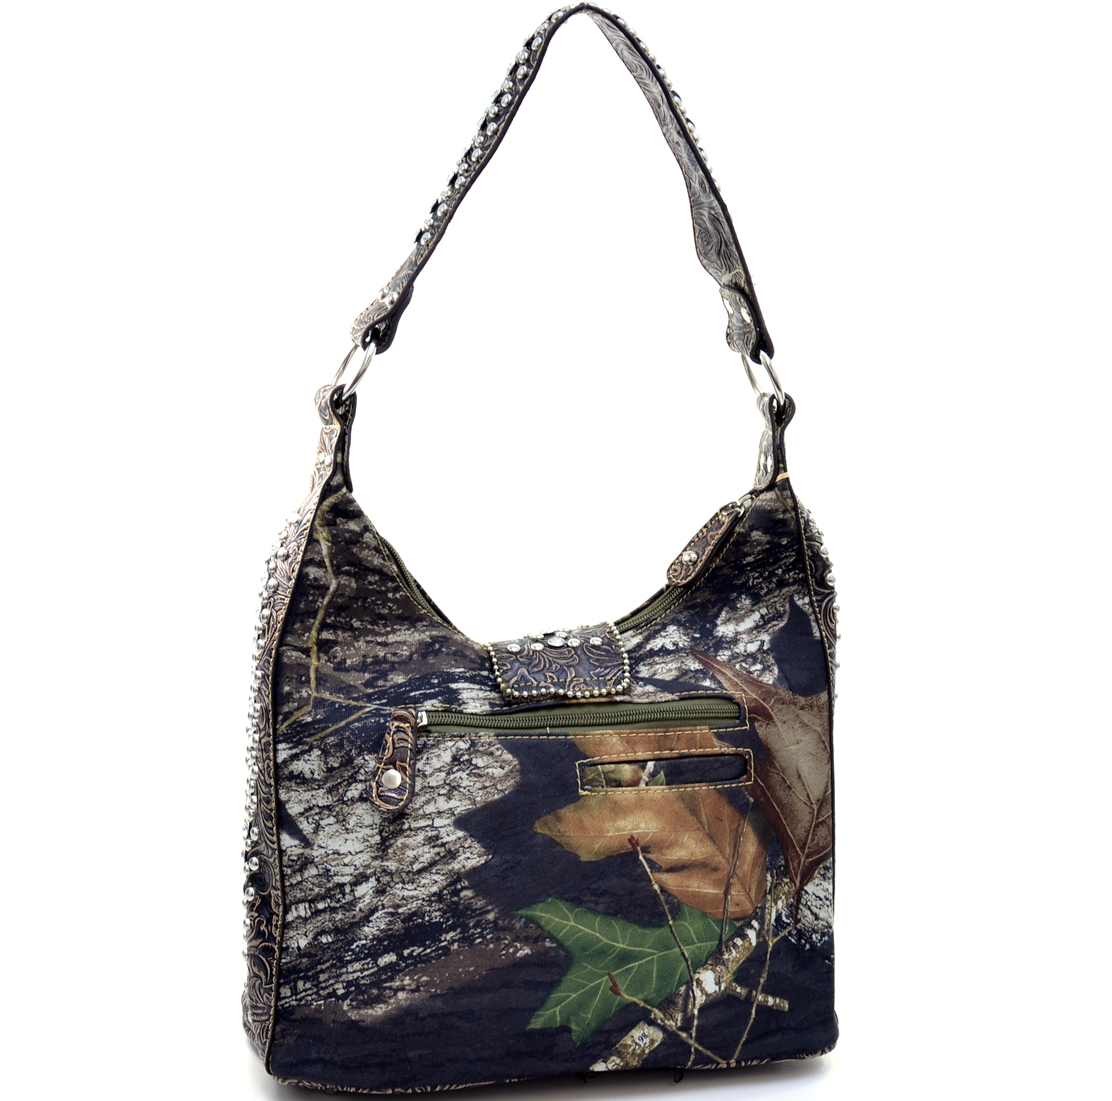 Mossy Oak Camo Hobo Bag with Rhinestone Buckle & Floral Trim